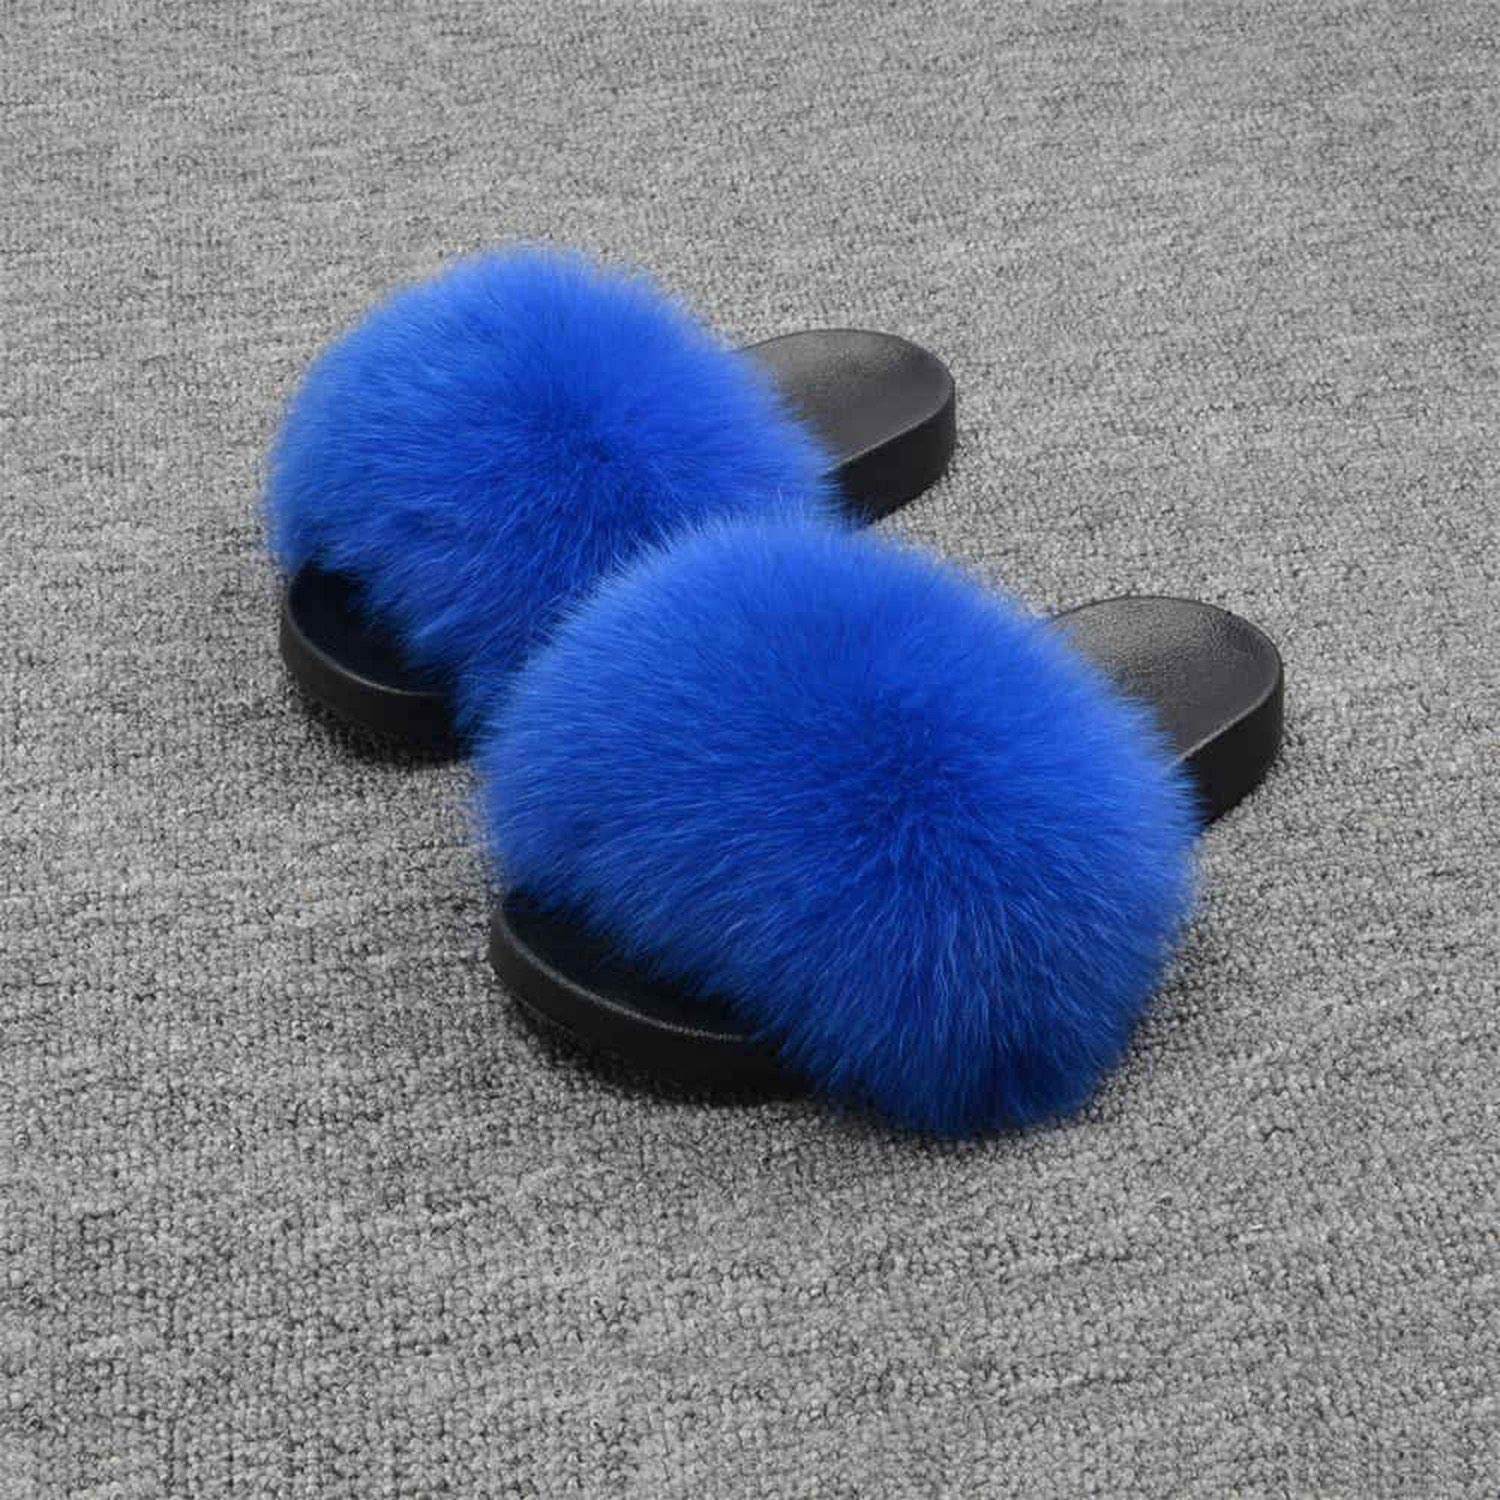 Royal bluee Blingbling-honored High end Real Fox Fur Slipper Women Slides Sliders Fashion Spring Summer Autumn Fluffy Fur Lady S6018